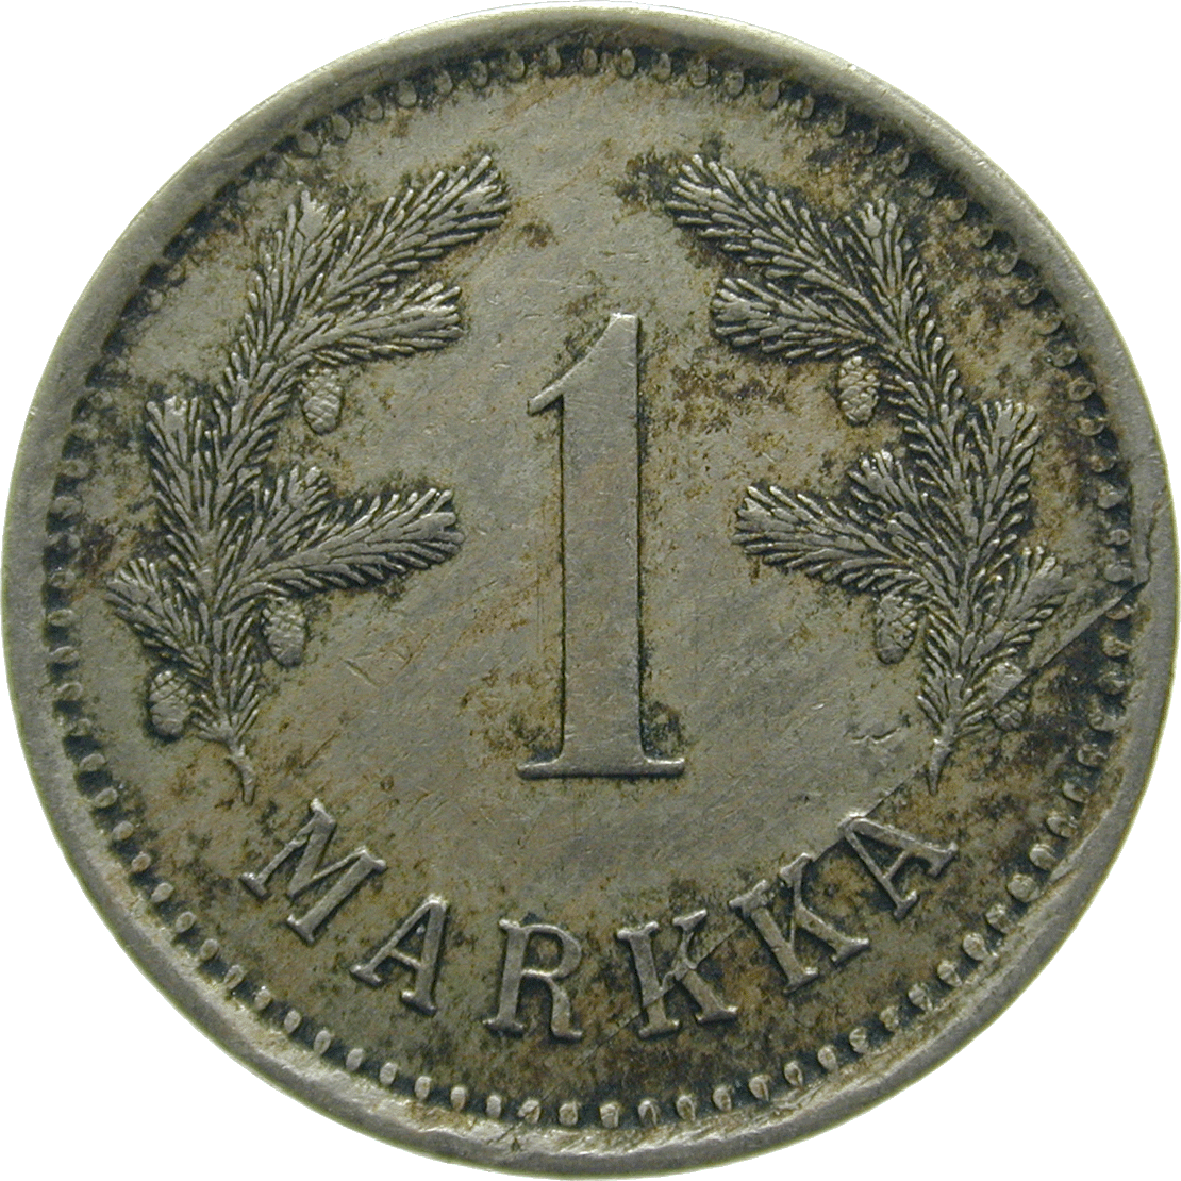 Republic of Finland, 1 Markka 1922 (reverse)